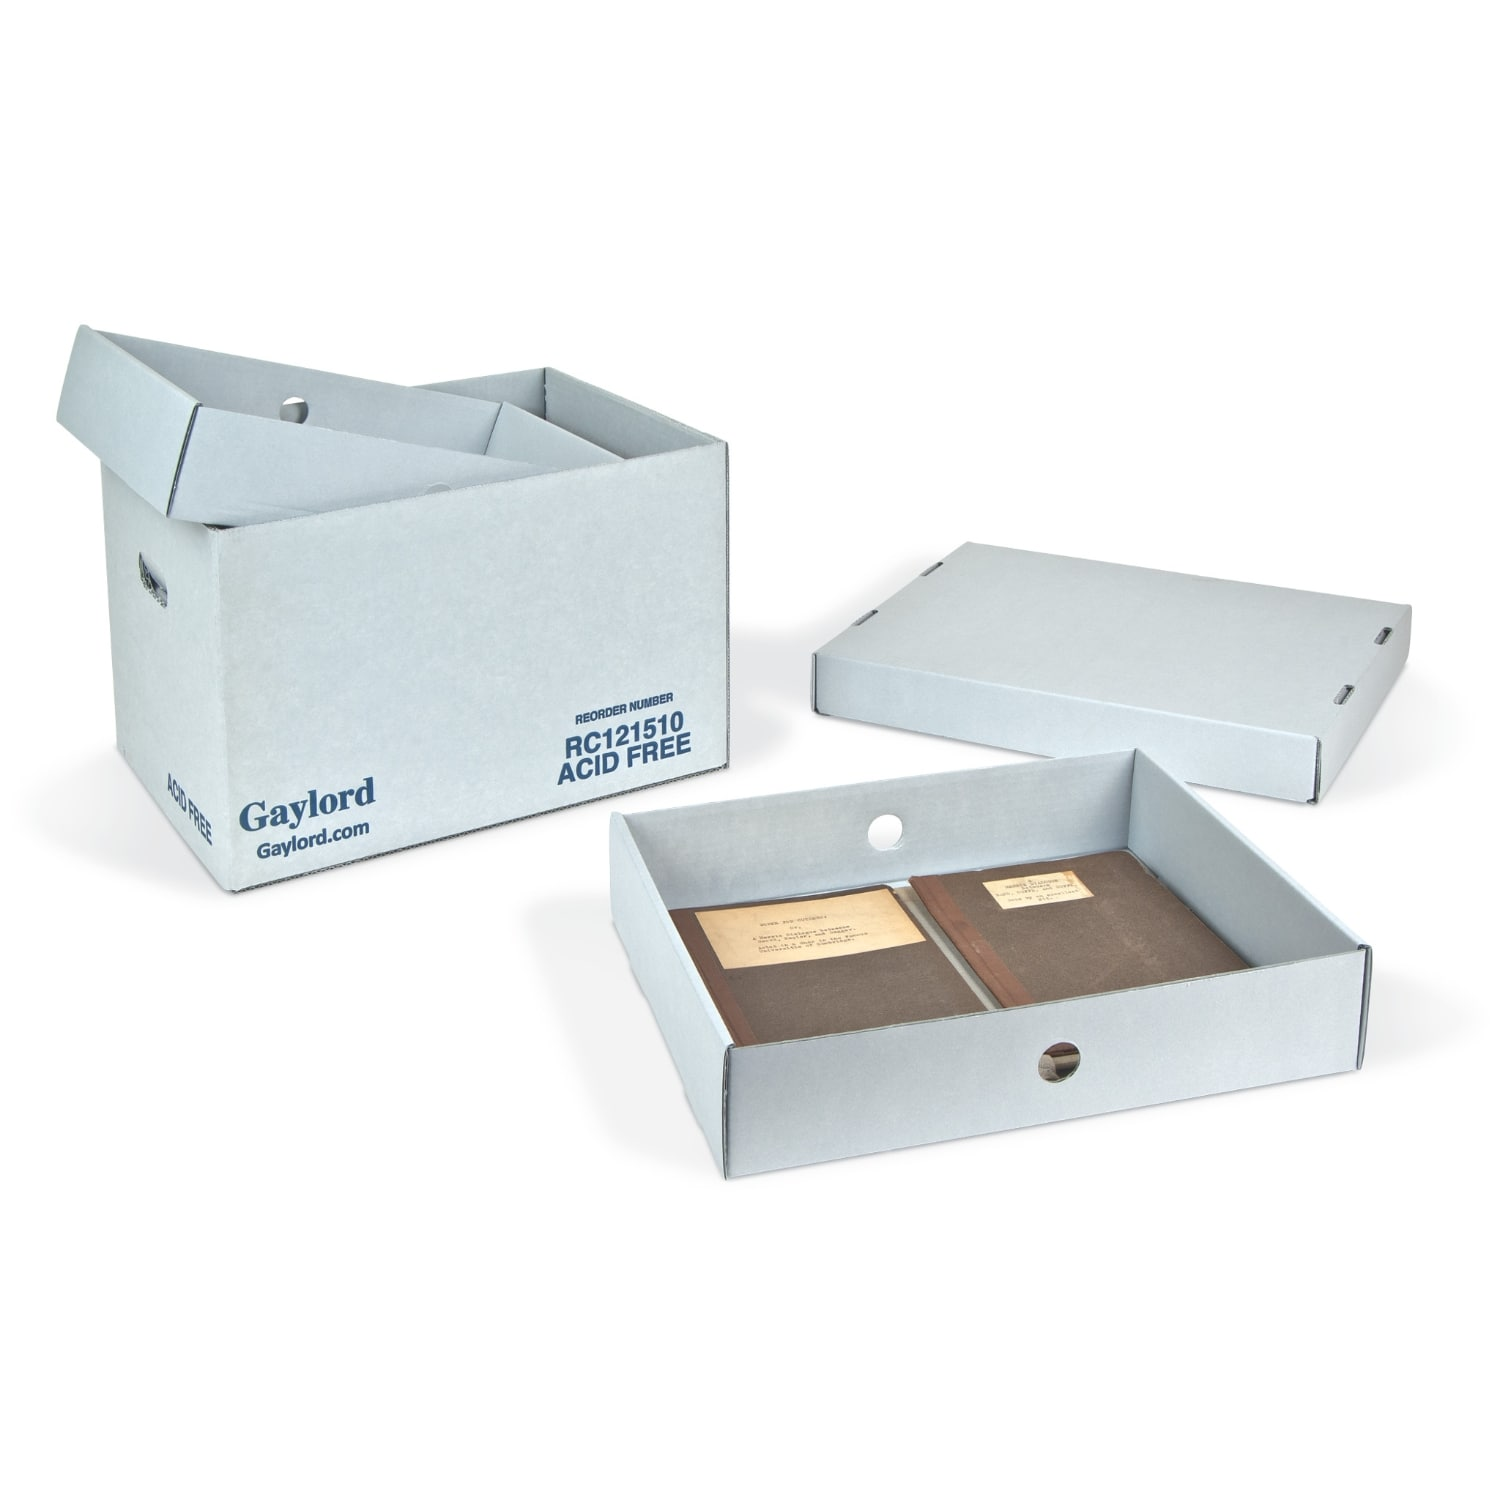 B-Flute Tray Archival & Library Solutions